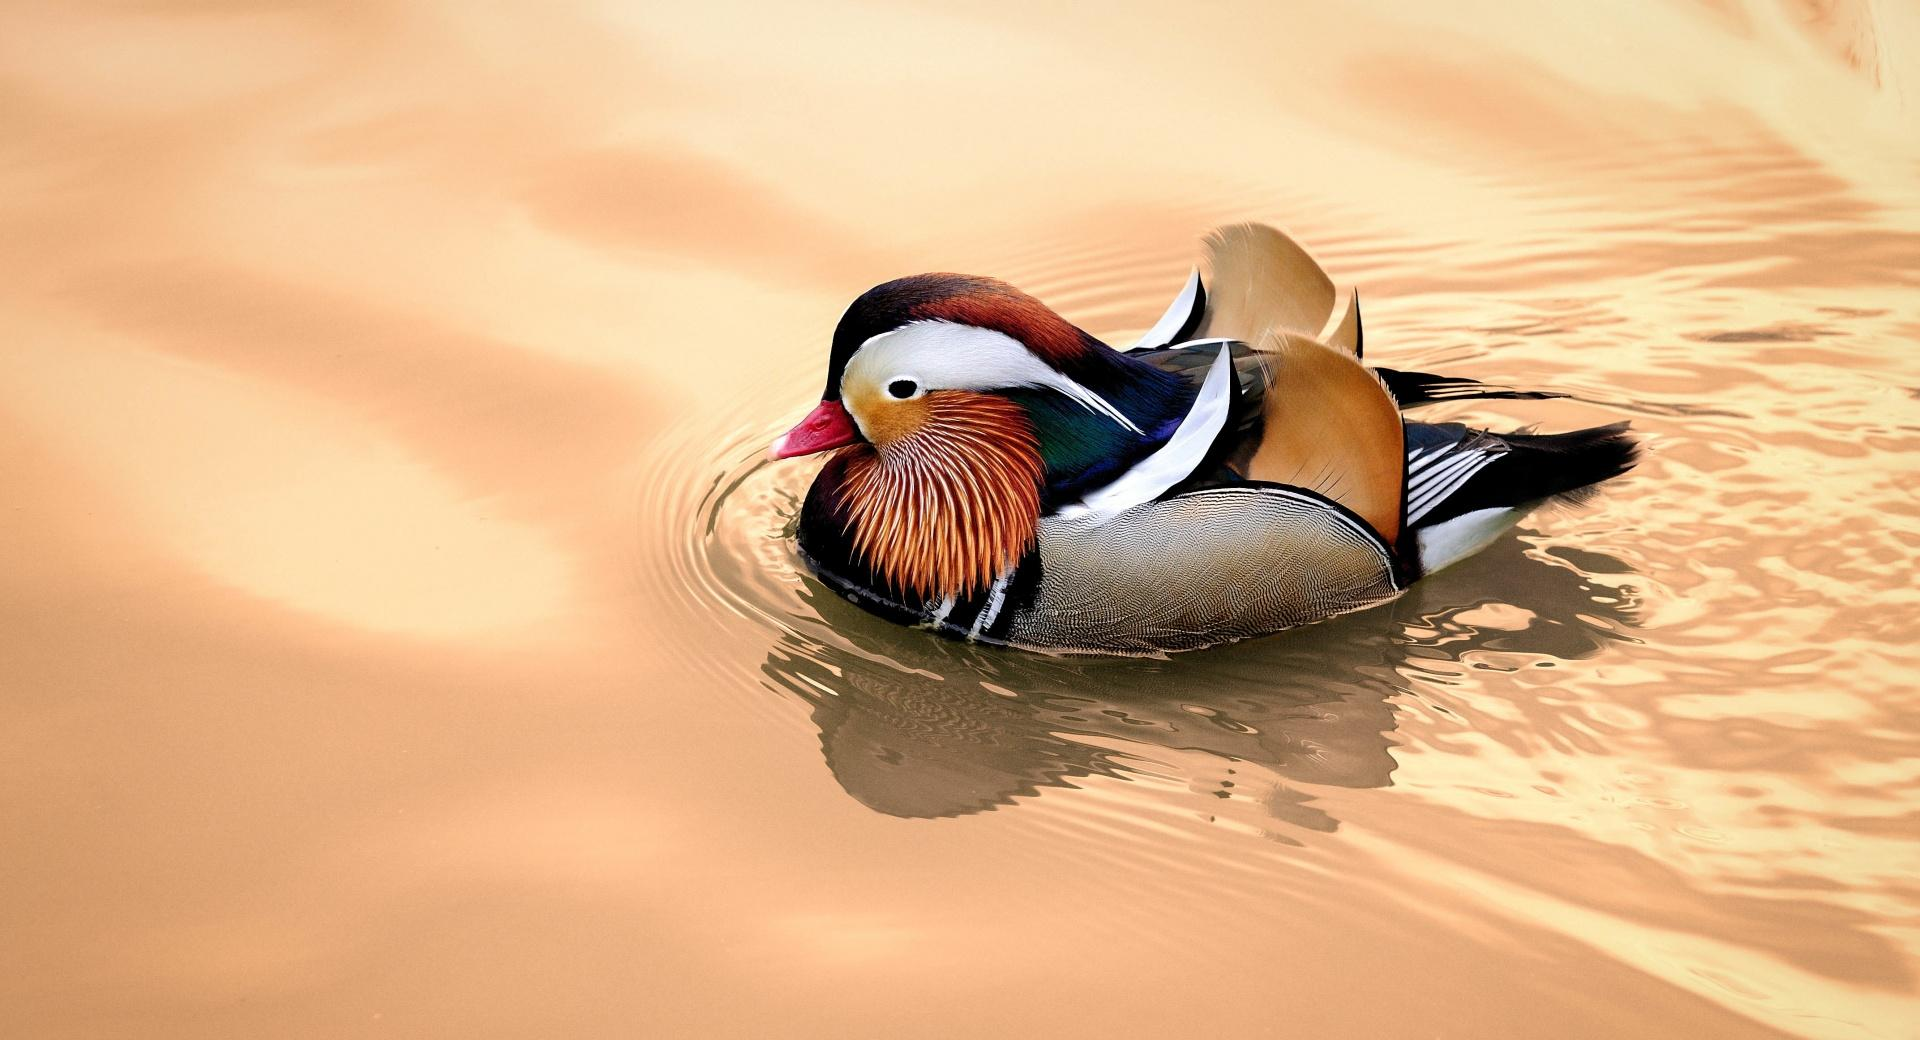 Mandarin Duck Male at 320 x 480 iPhone size wallpapers HD quality